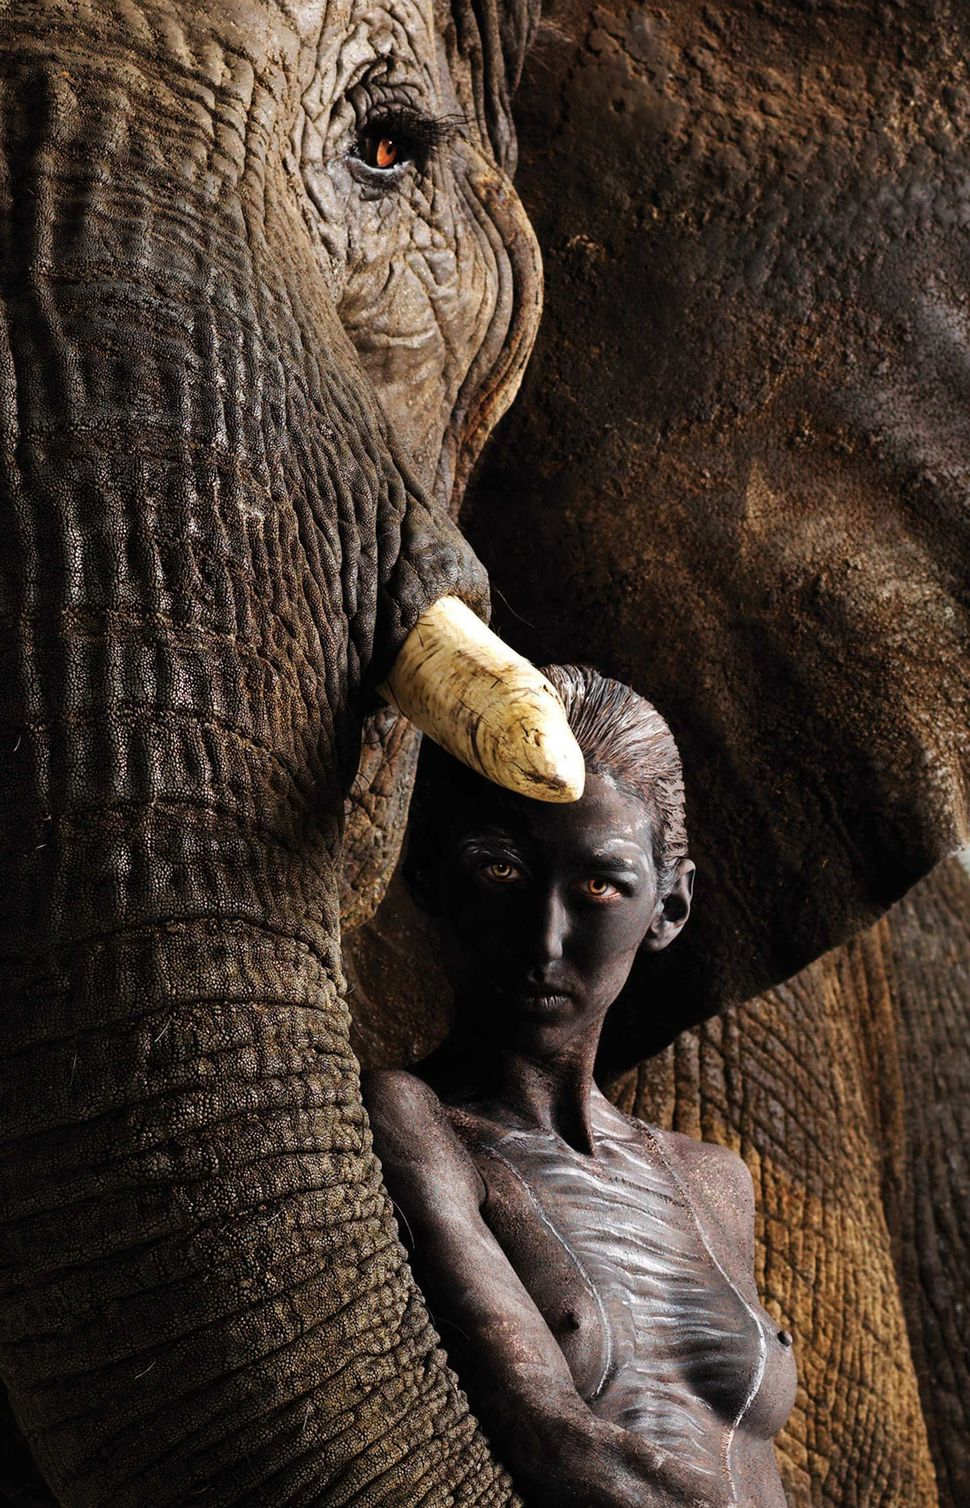 Model Kaela poses with African Elephant Susie in Los Angeles, California. (Lennette Newell / Bacroft USA / Getty Images)